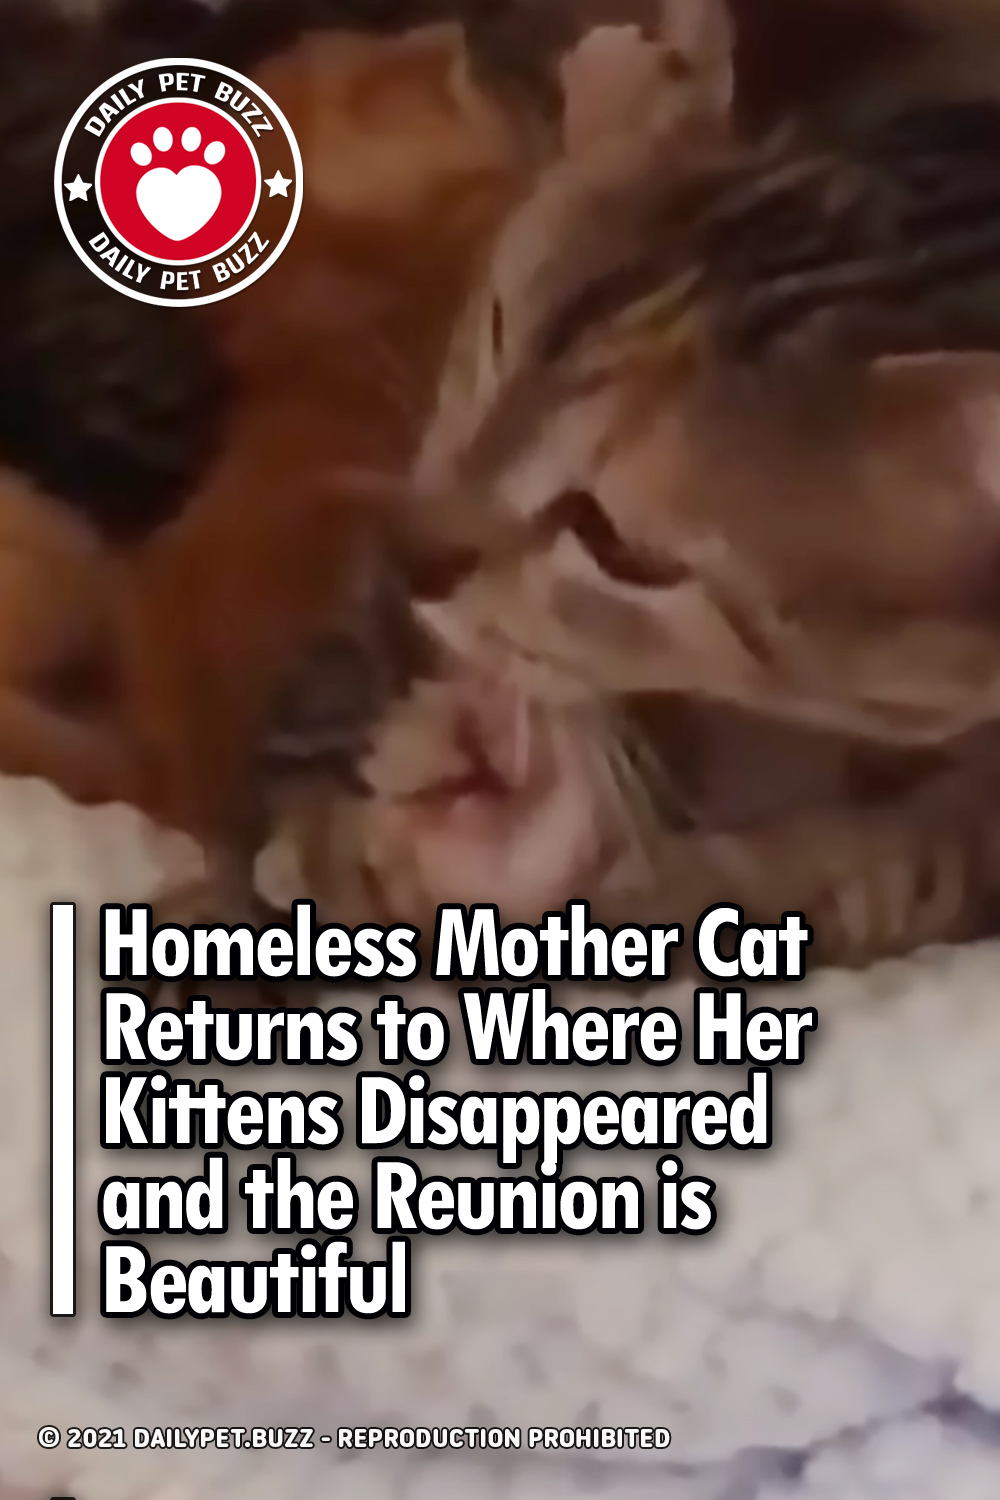 Homeless Mother Cat Returns to Where Her Kittens Disappeared and the Reunion is Beautiful